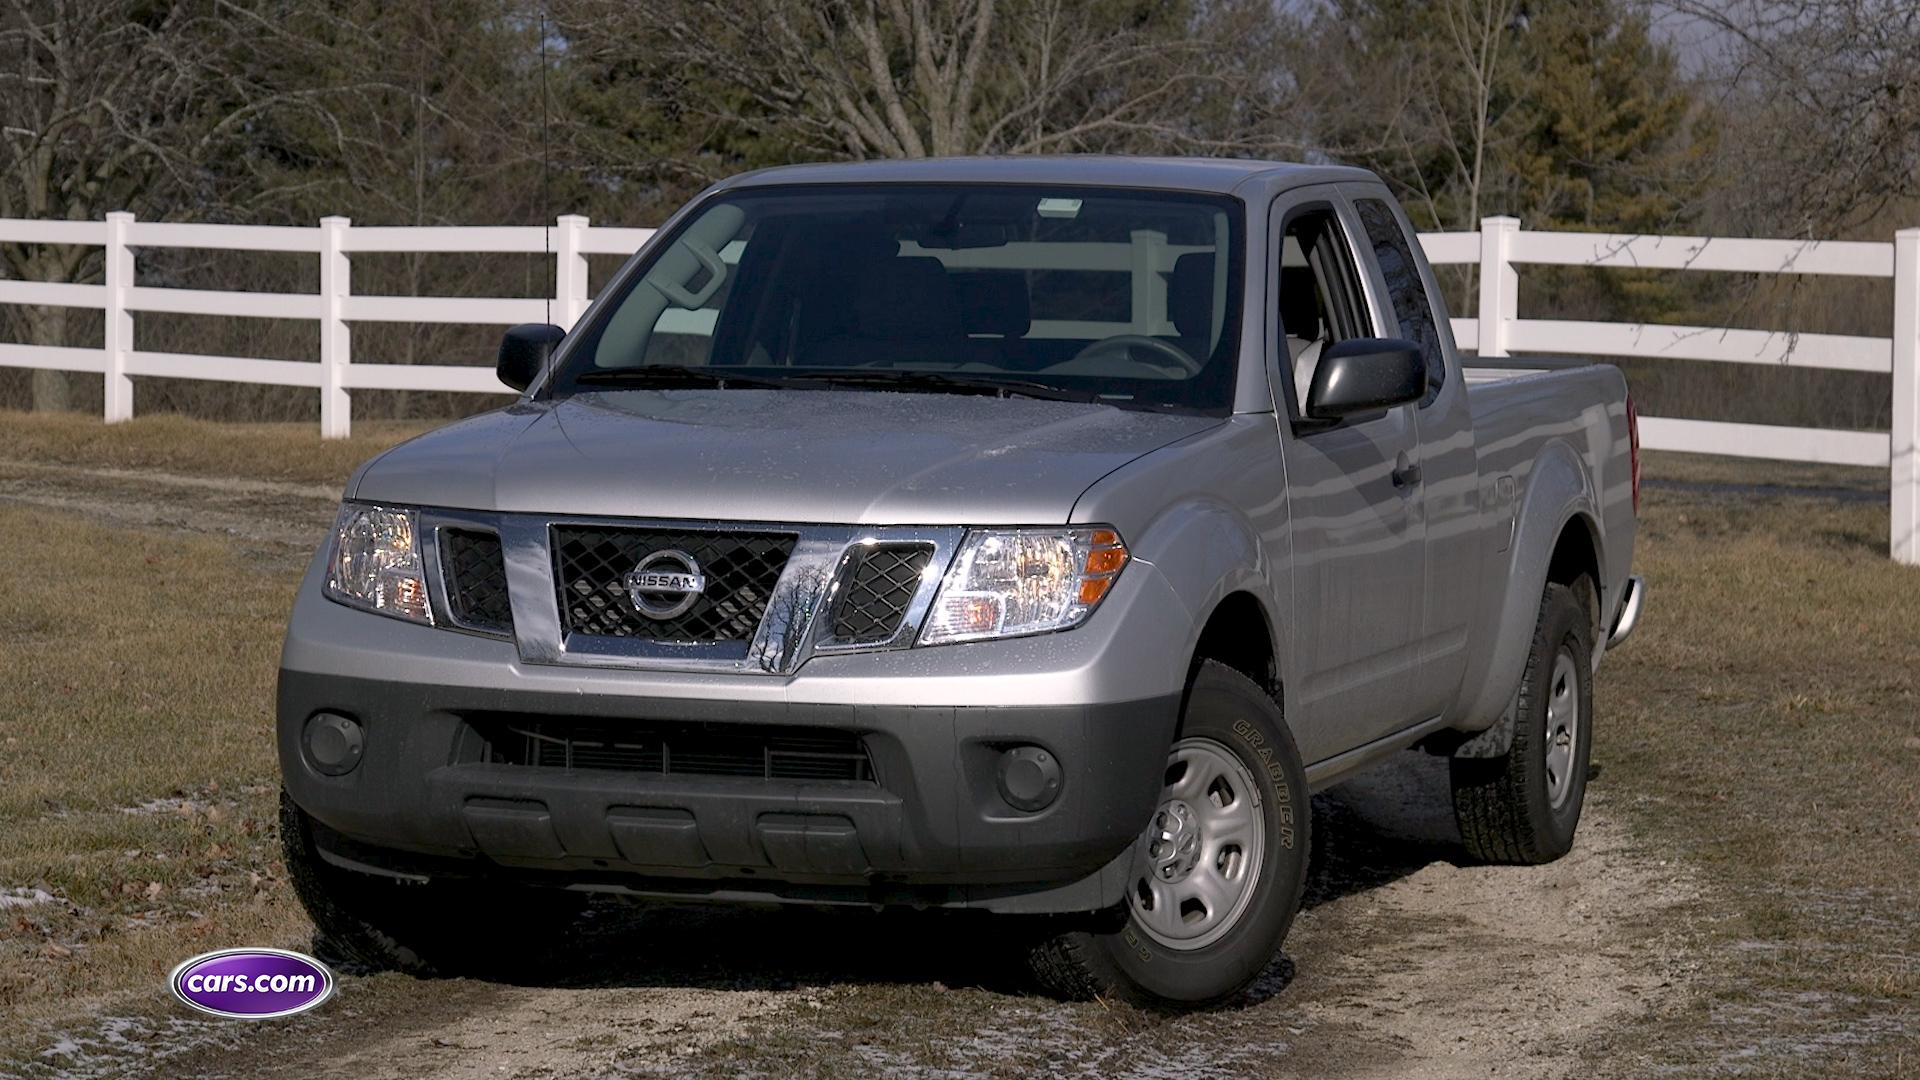 Video: 2018 Nissan Frontier — Cars.com